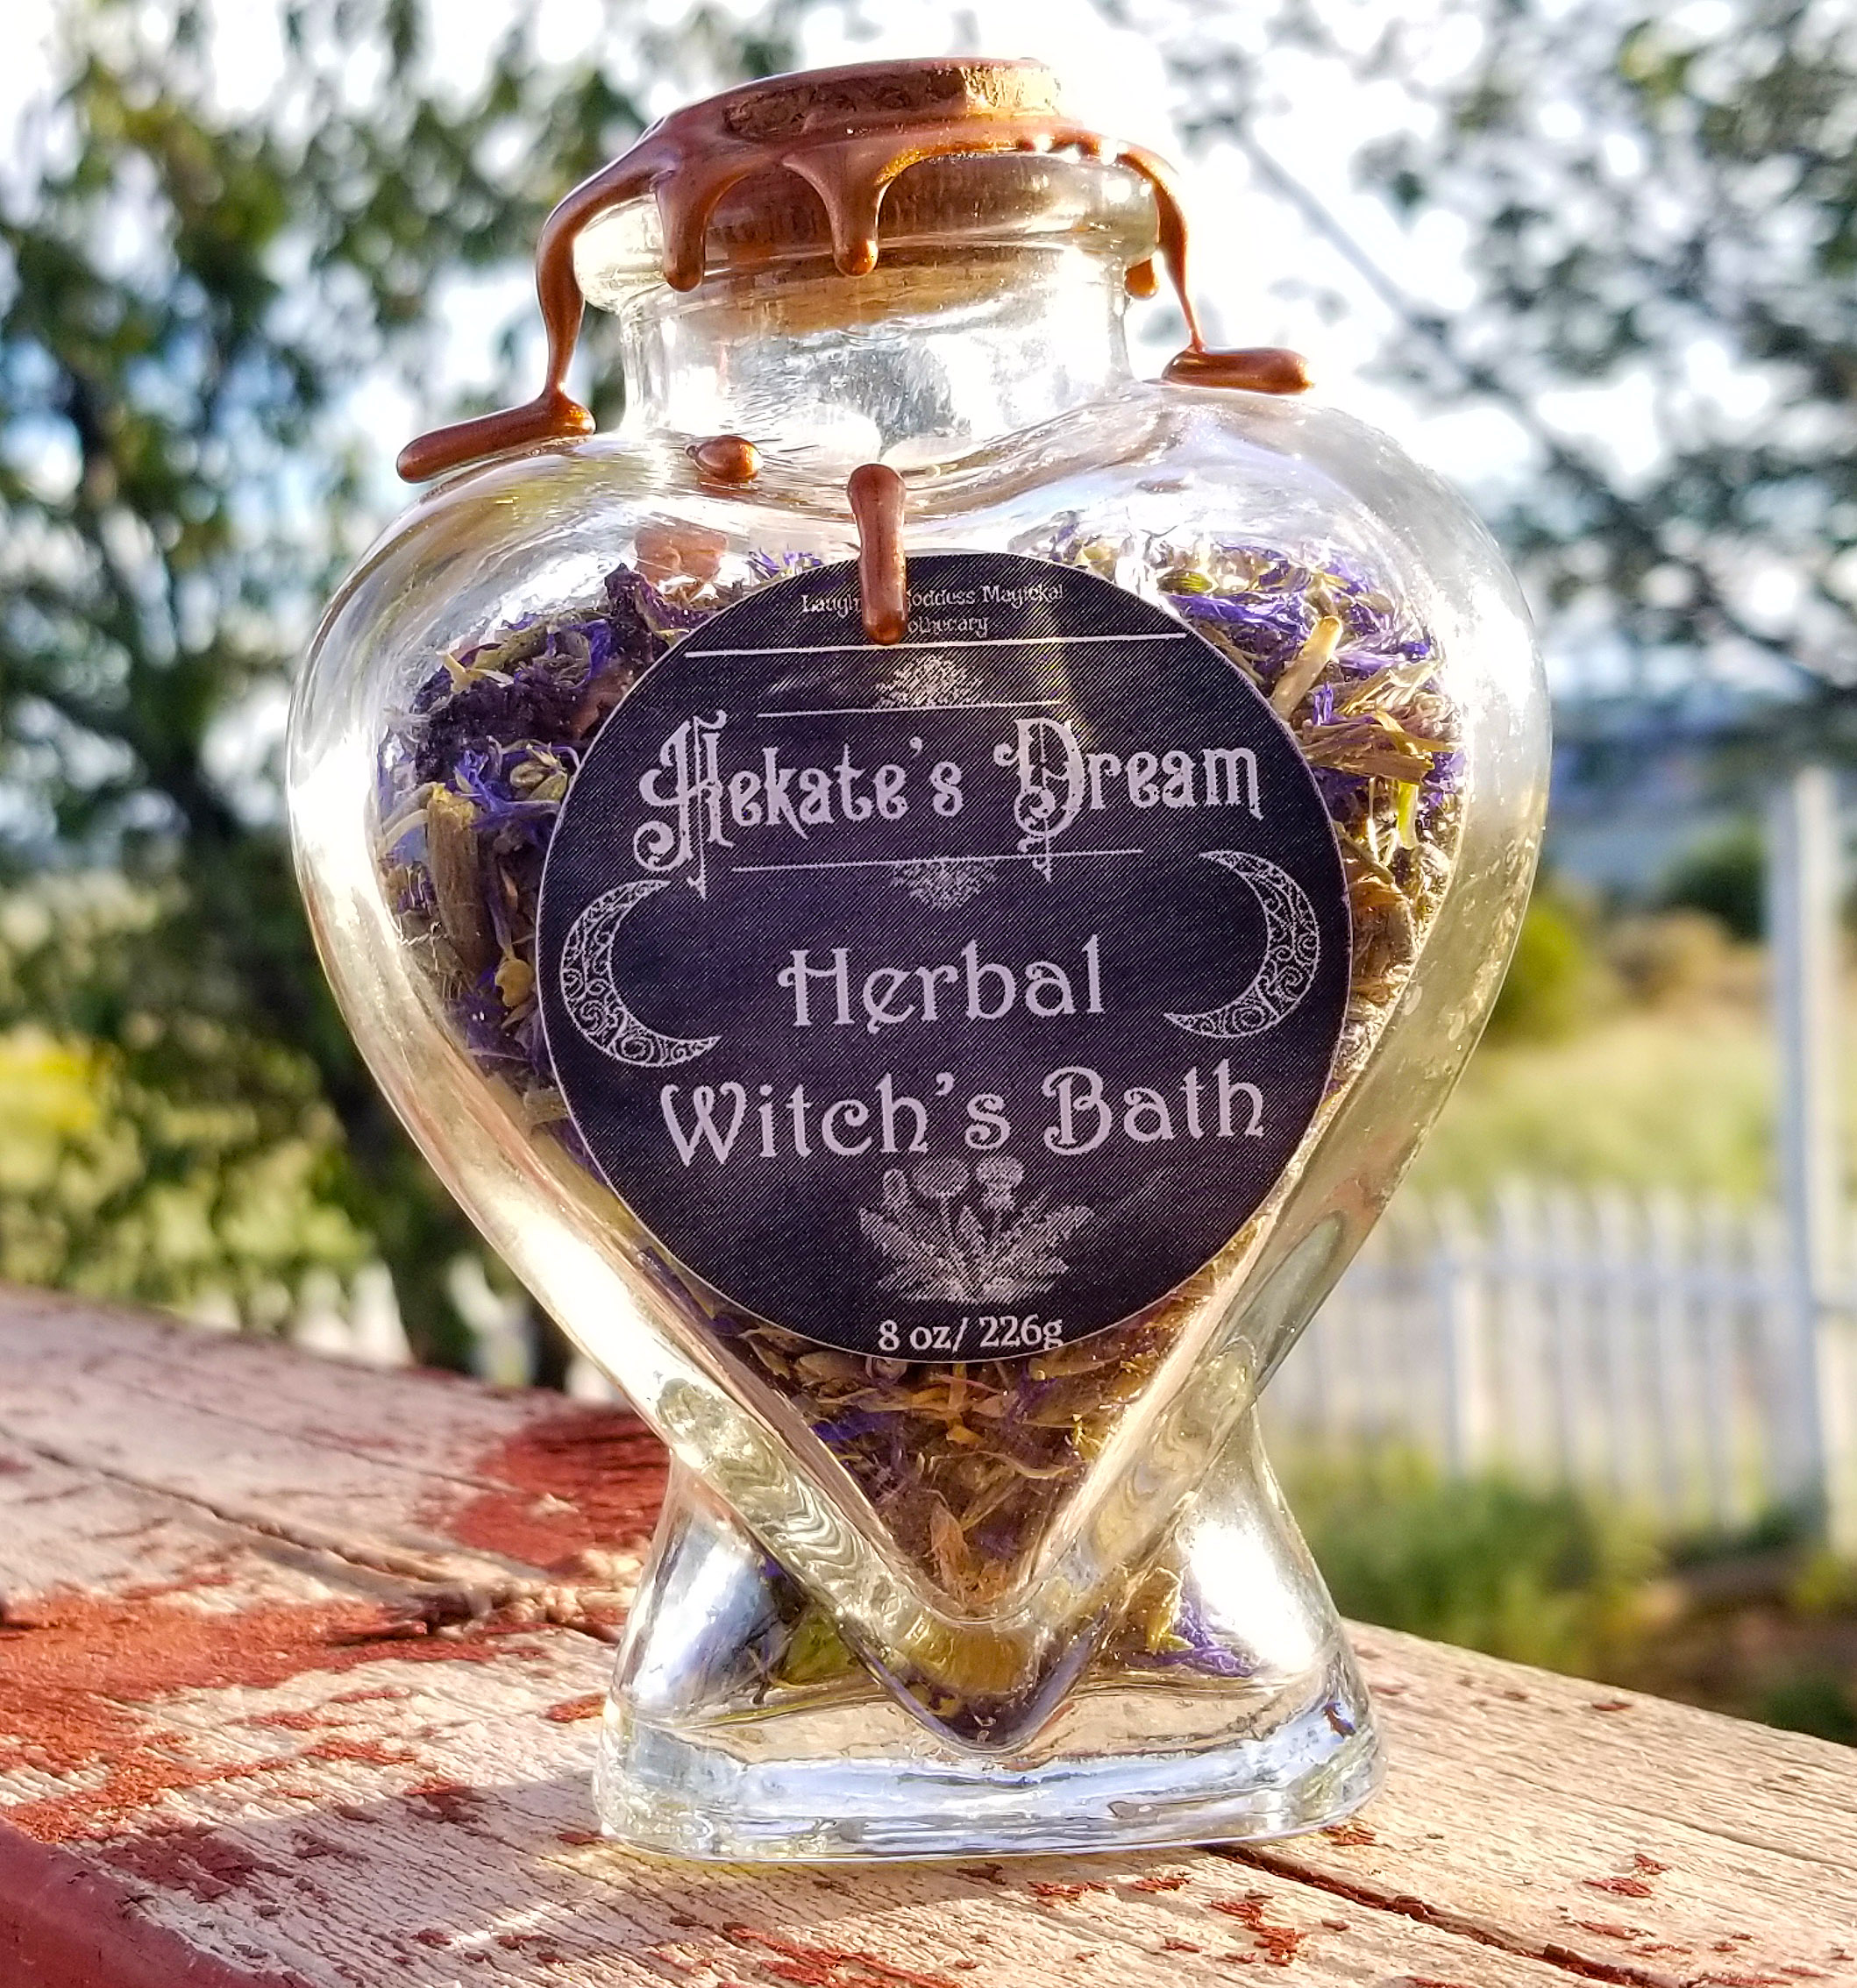 Hekate Witch's Bath | Laughing Goddess Magickal Apothecary